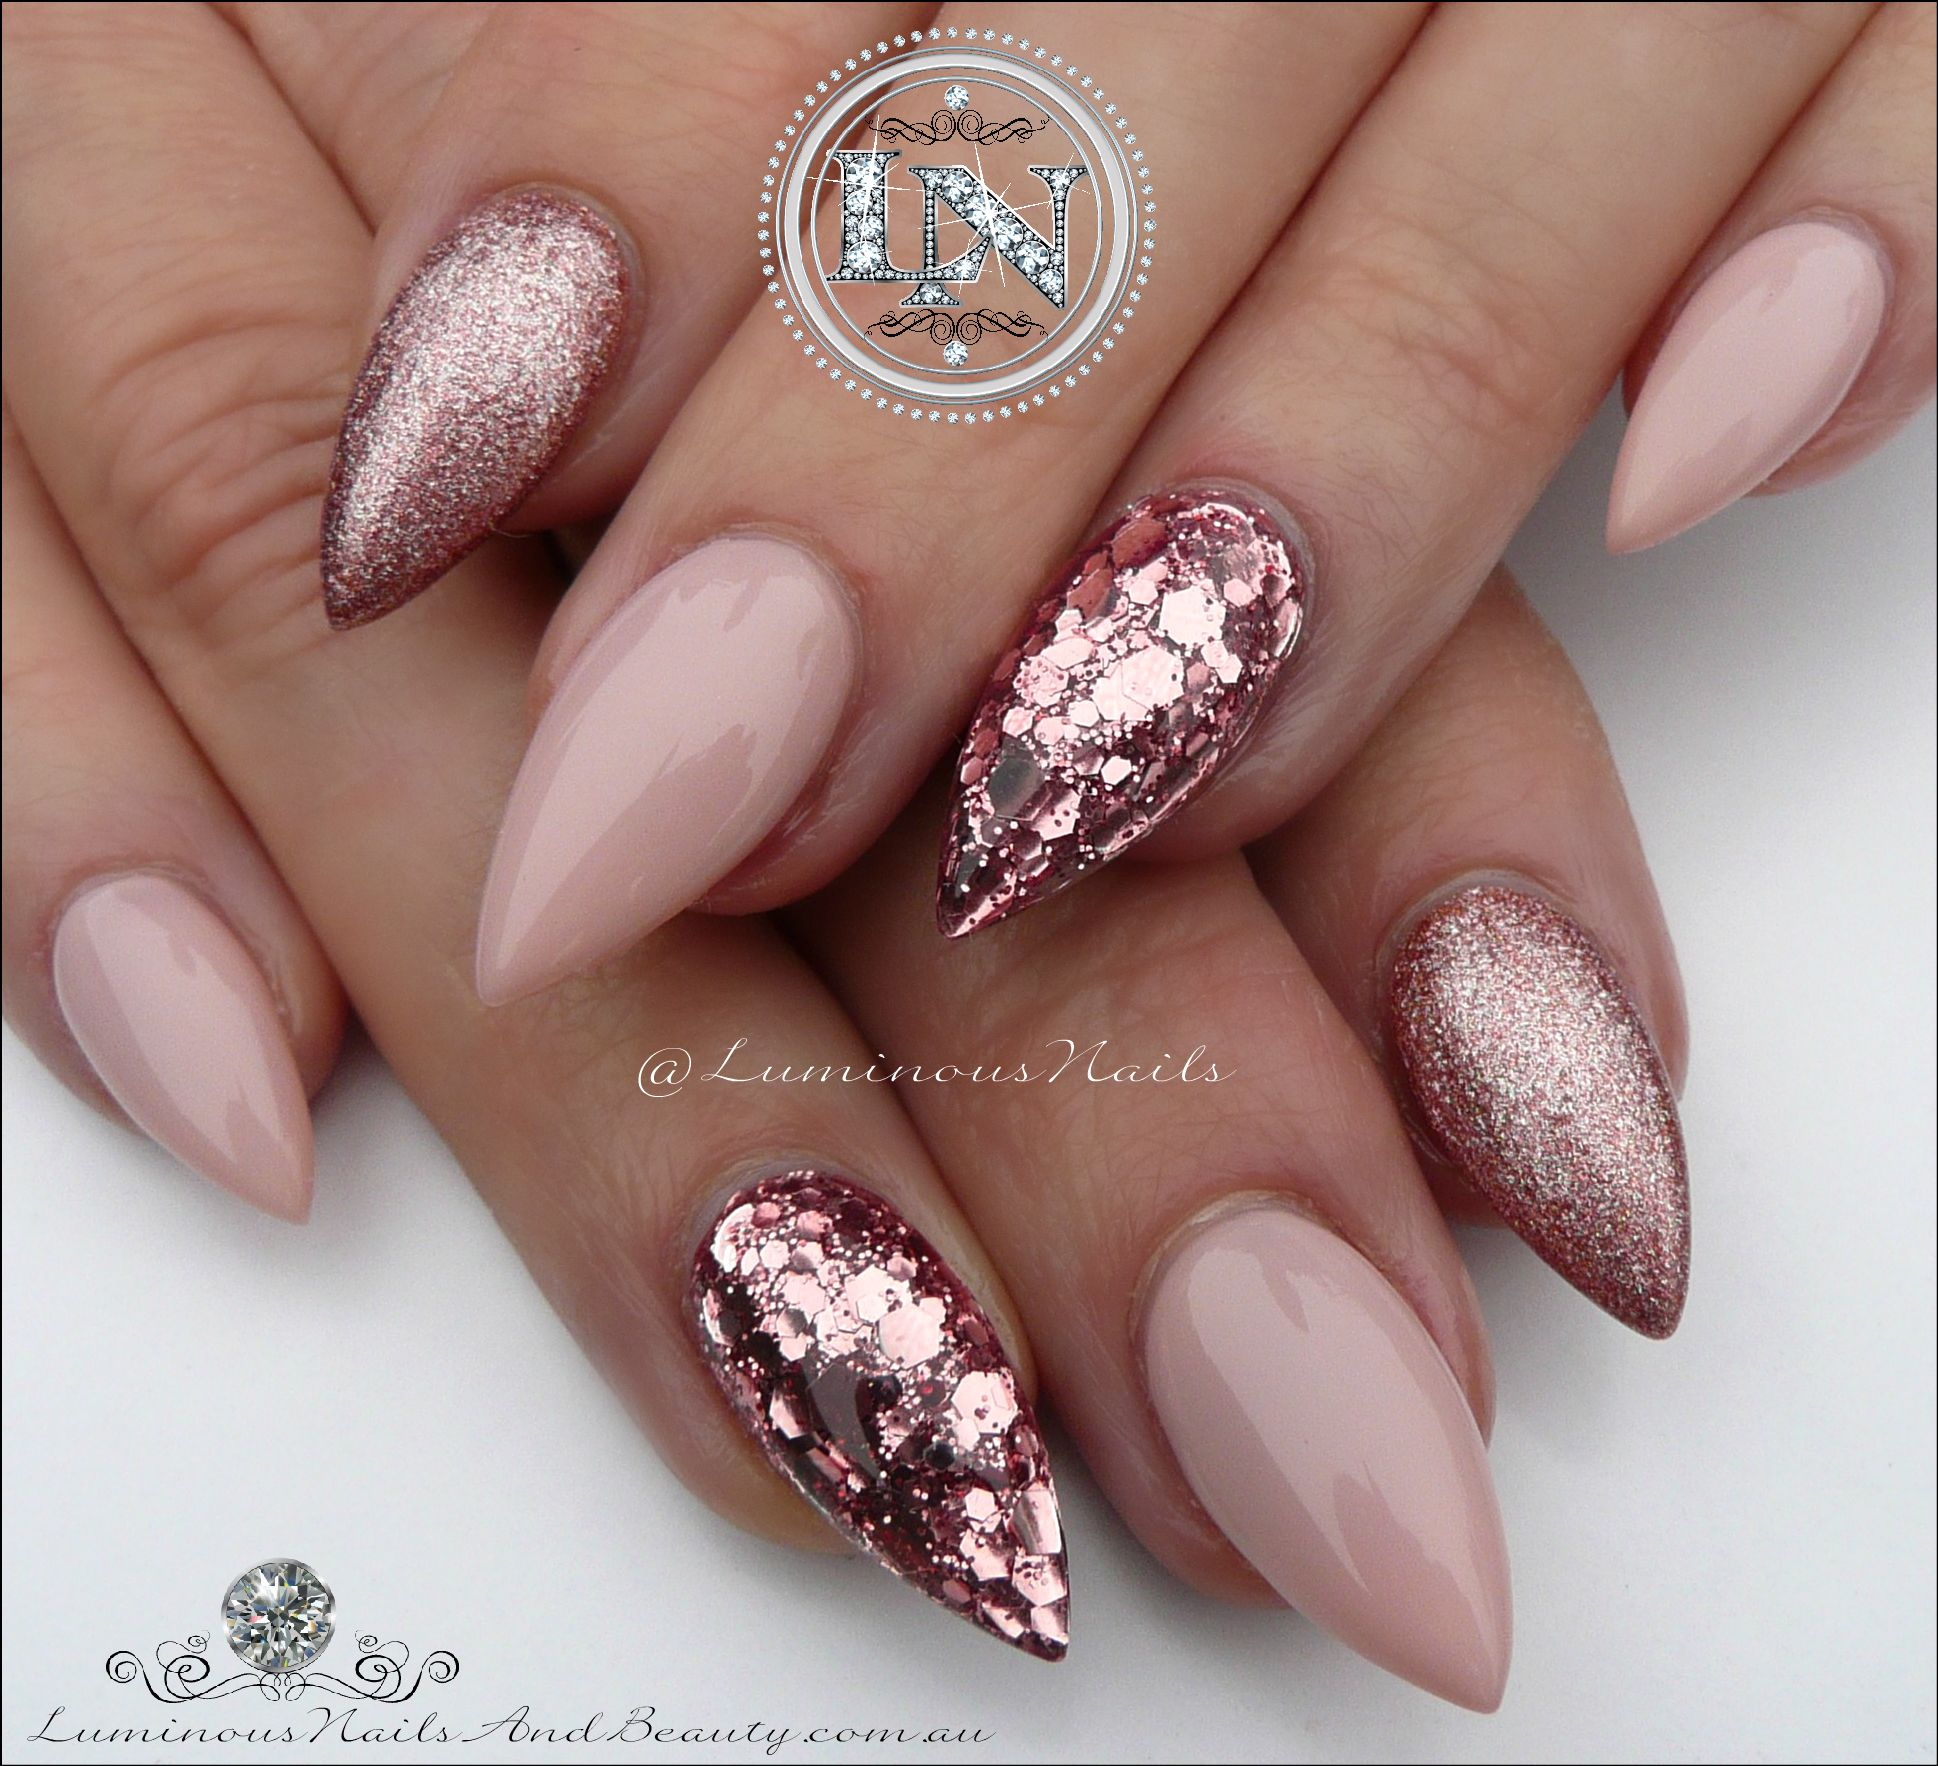 luminous nails beauty gold coast qld rose gold nails soft pink nails cute nails quality. Black Bedroom Furniture Sets. Home Design Ideas